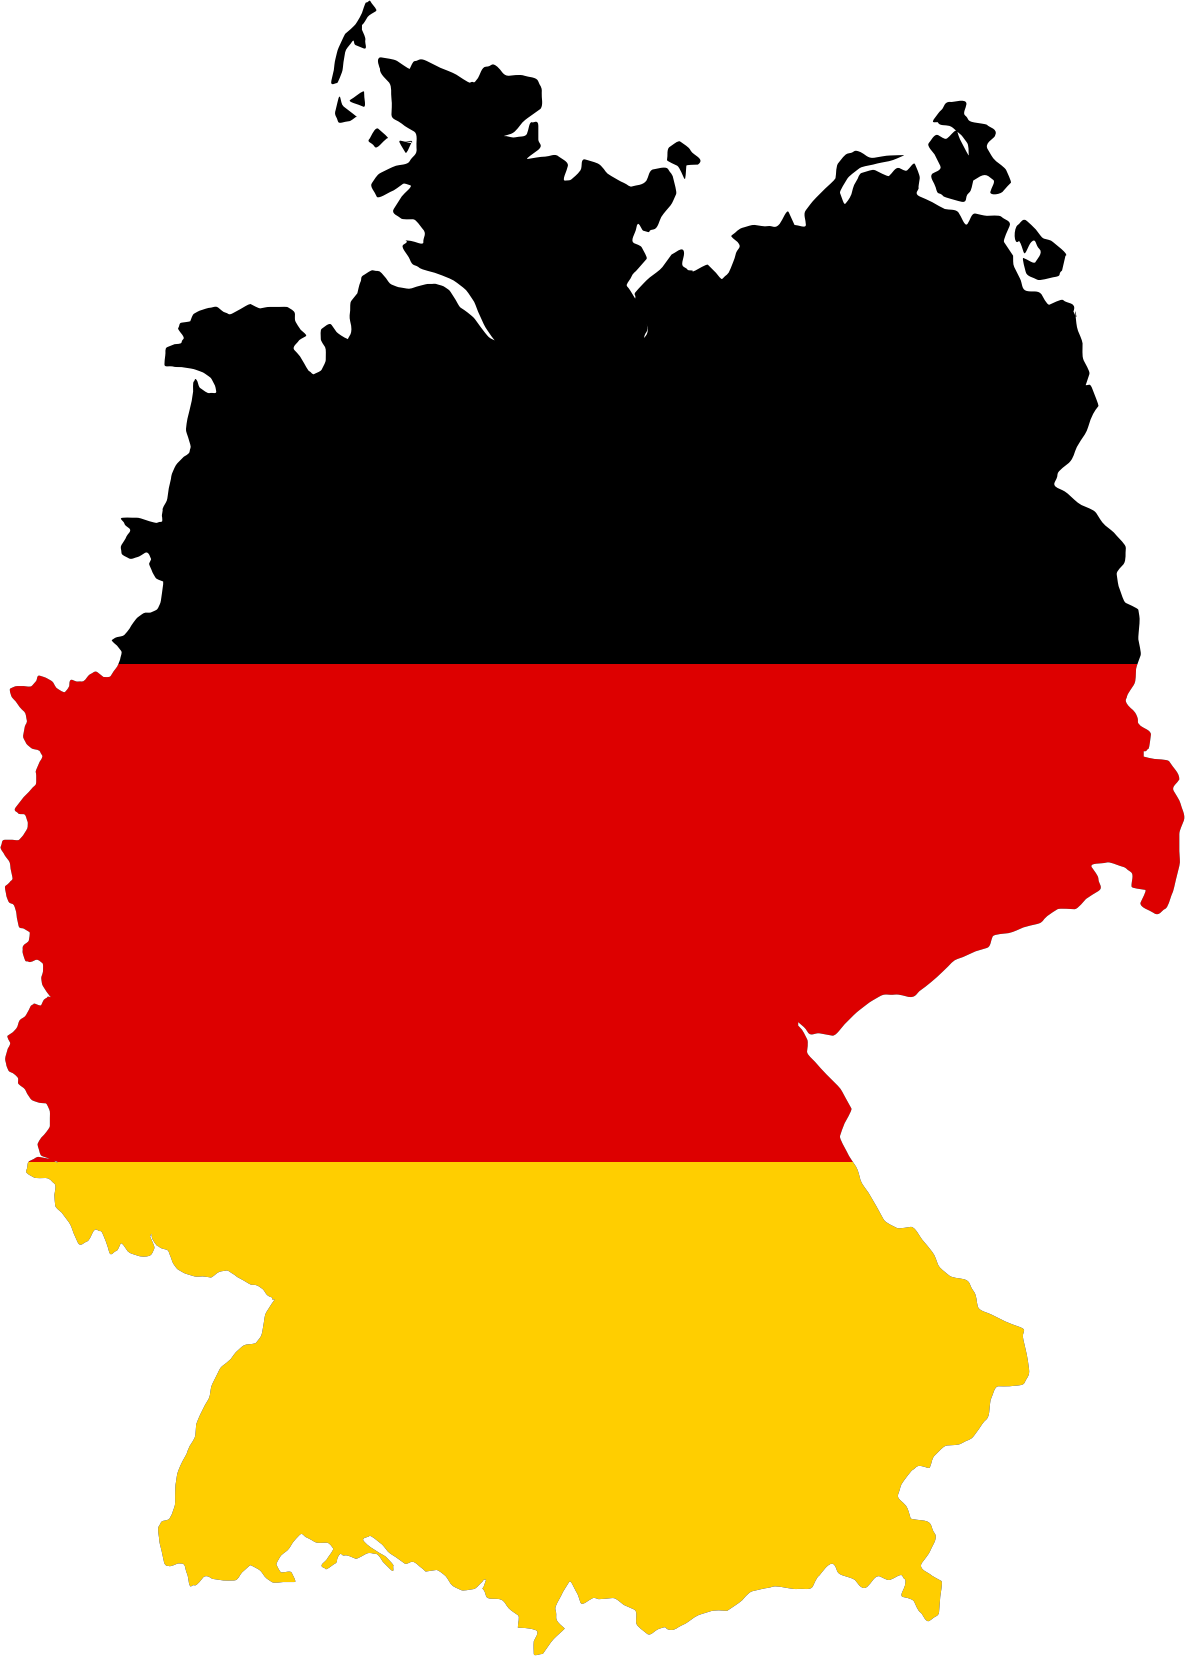 Remix of German map with flag colors by Manuela.